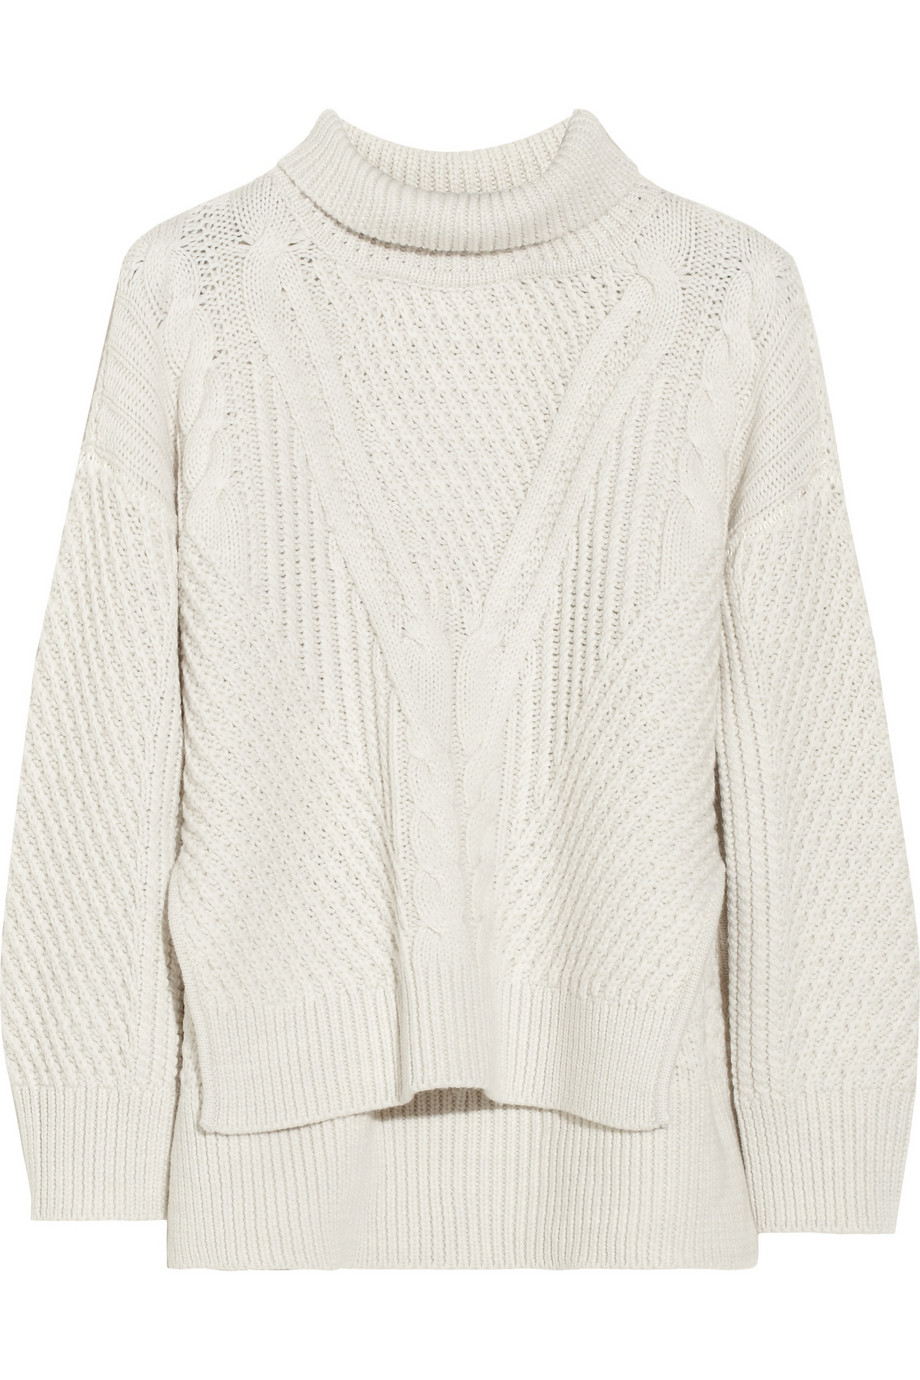 Cable-knit wool turtleneck sweater | Duffy | 50% off | THE OUTNET